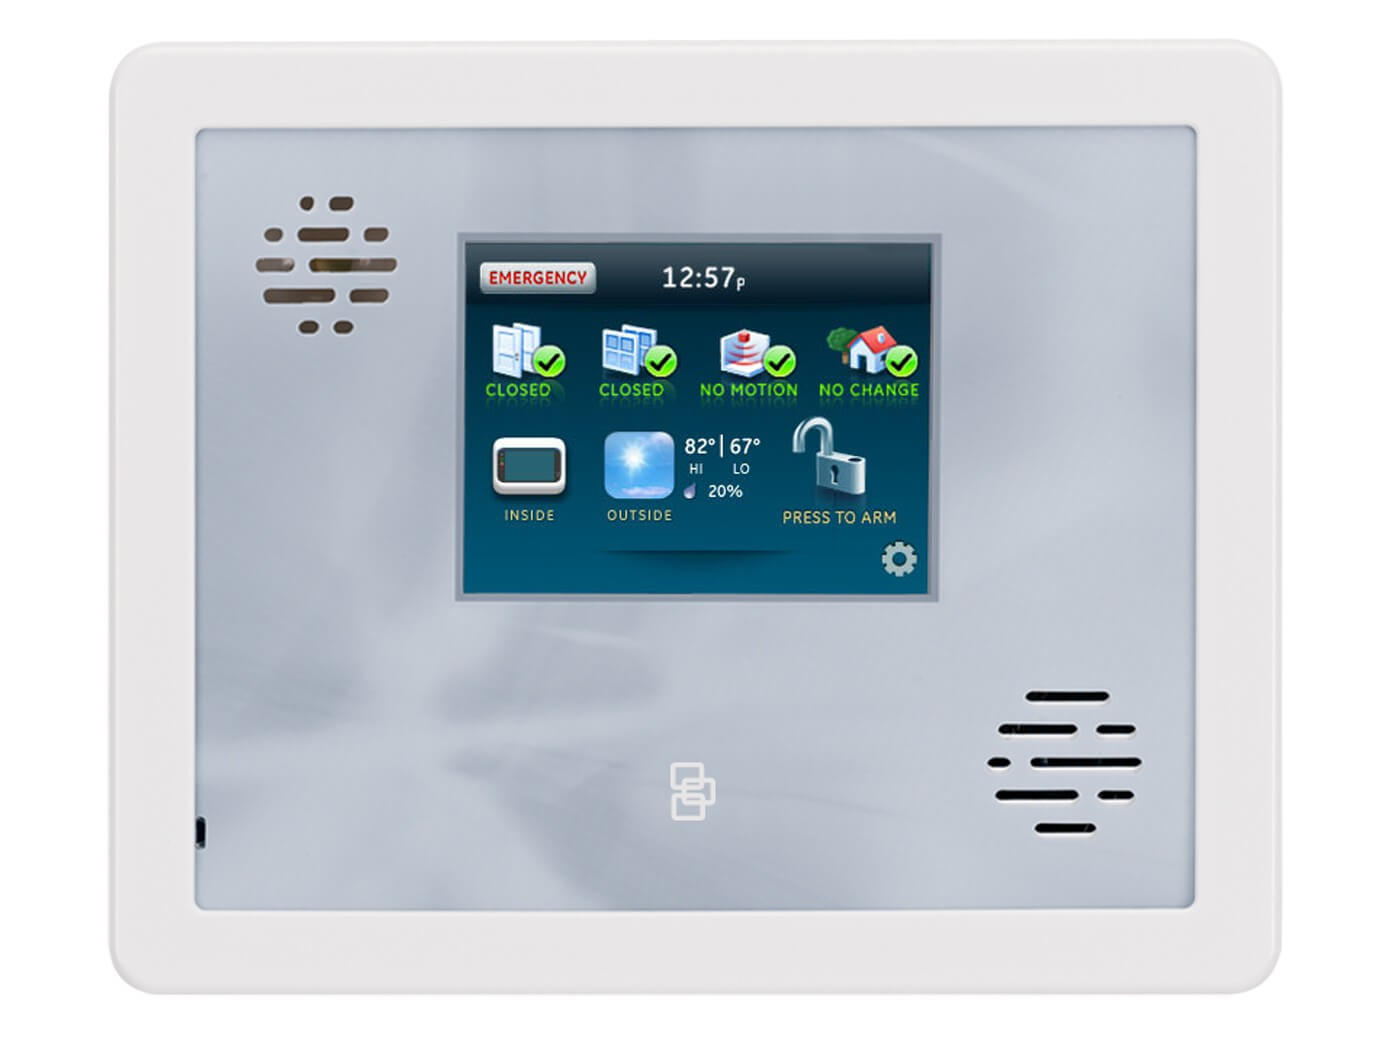 Generic control panel that can be taken over by Alert 360 home security service.